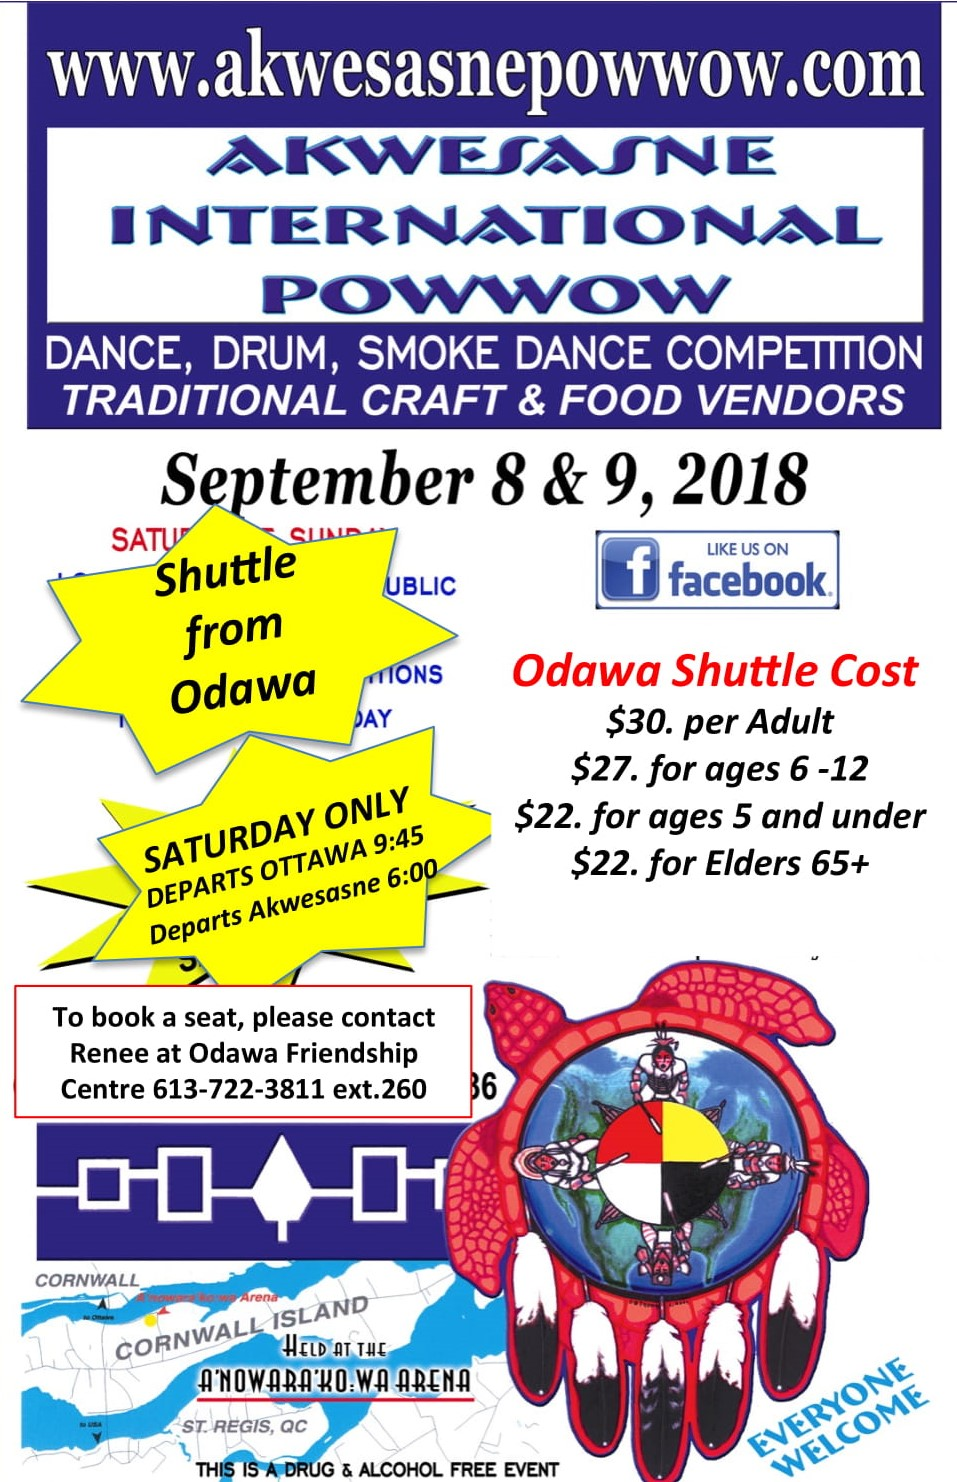 On                 September 8 & 9, 2018. Please contact Renee at the                 ONFC (613-722-3811 ext. 260) to book a seat on the                 shuttle leaving from Odawa and for more information.